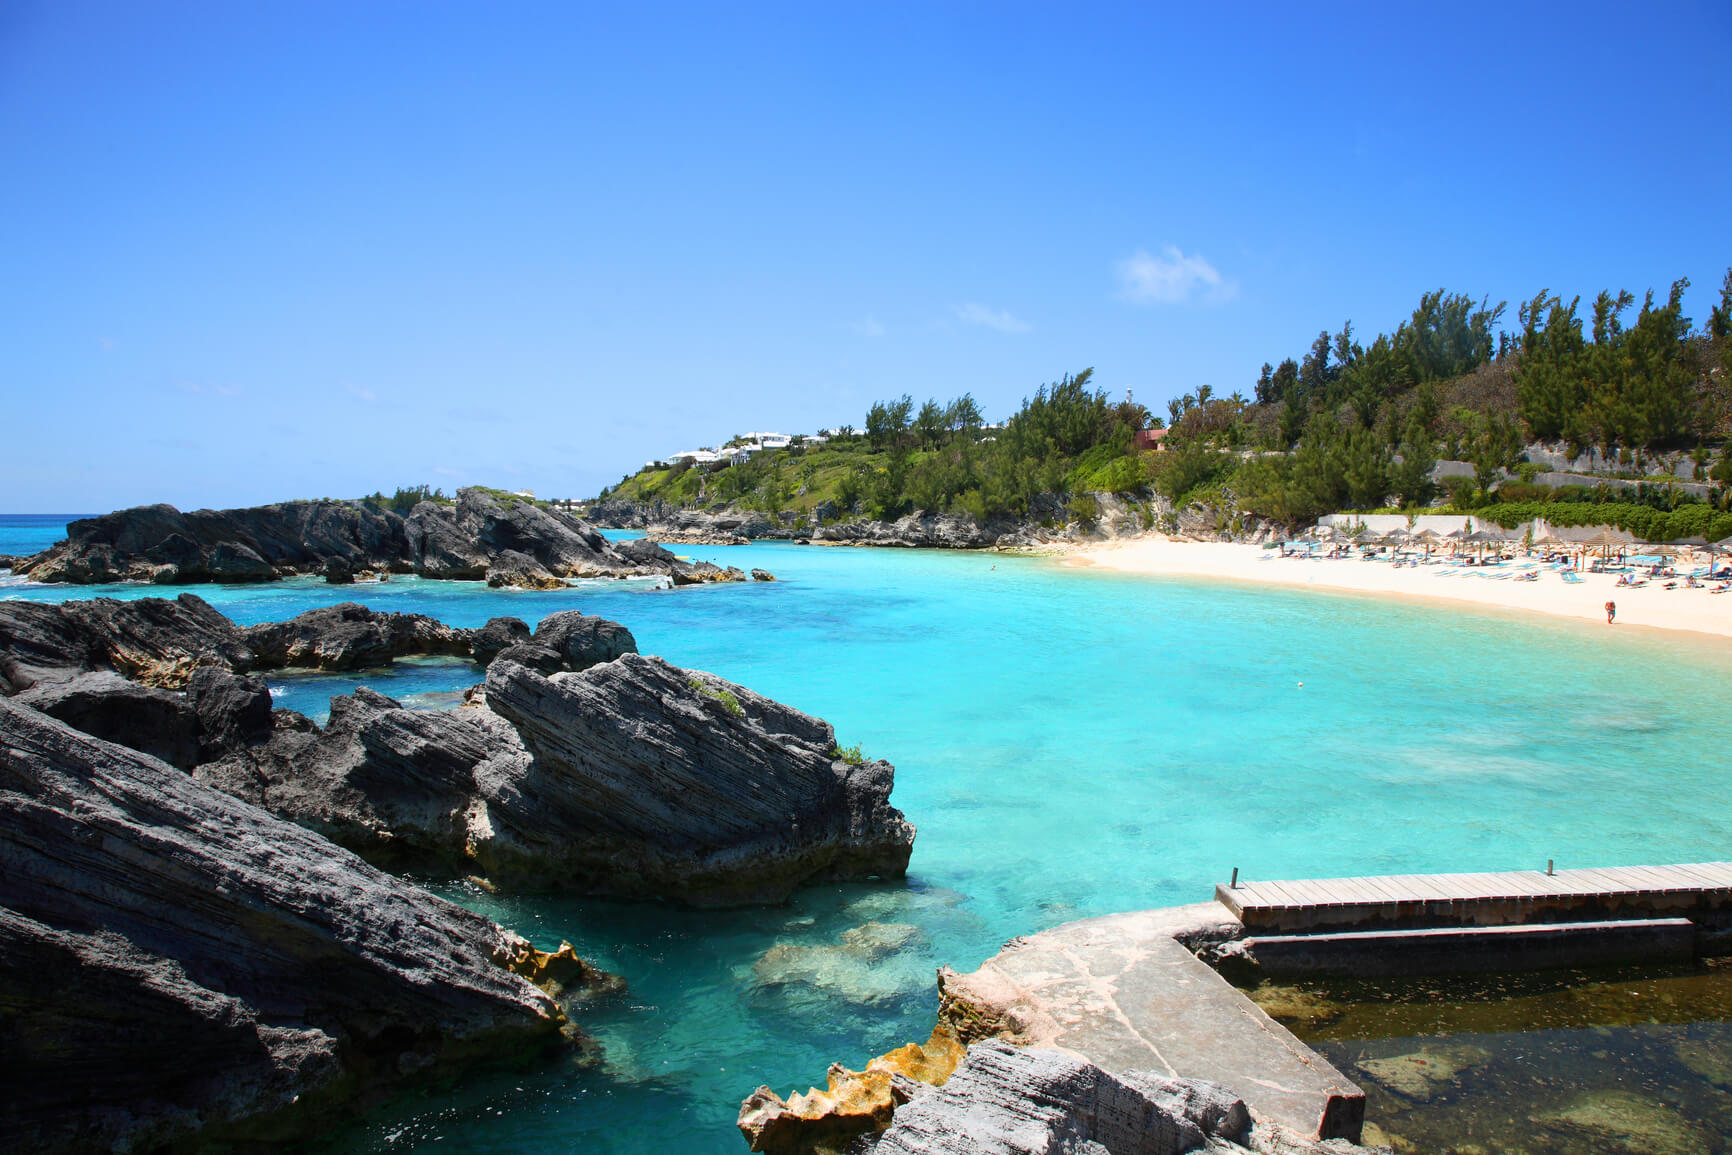 SUMMER: Non-stop from New York to Bermuda for only $48 one-way (or $182 roundtrip)